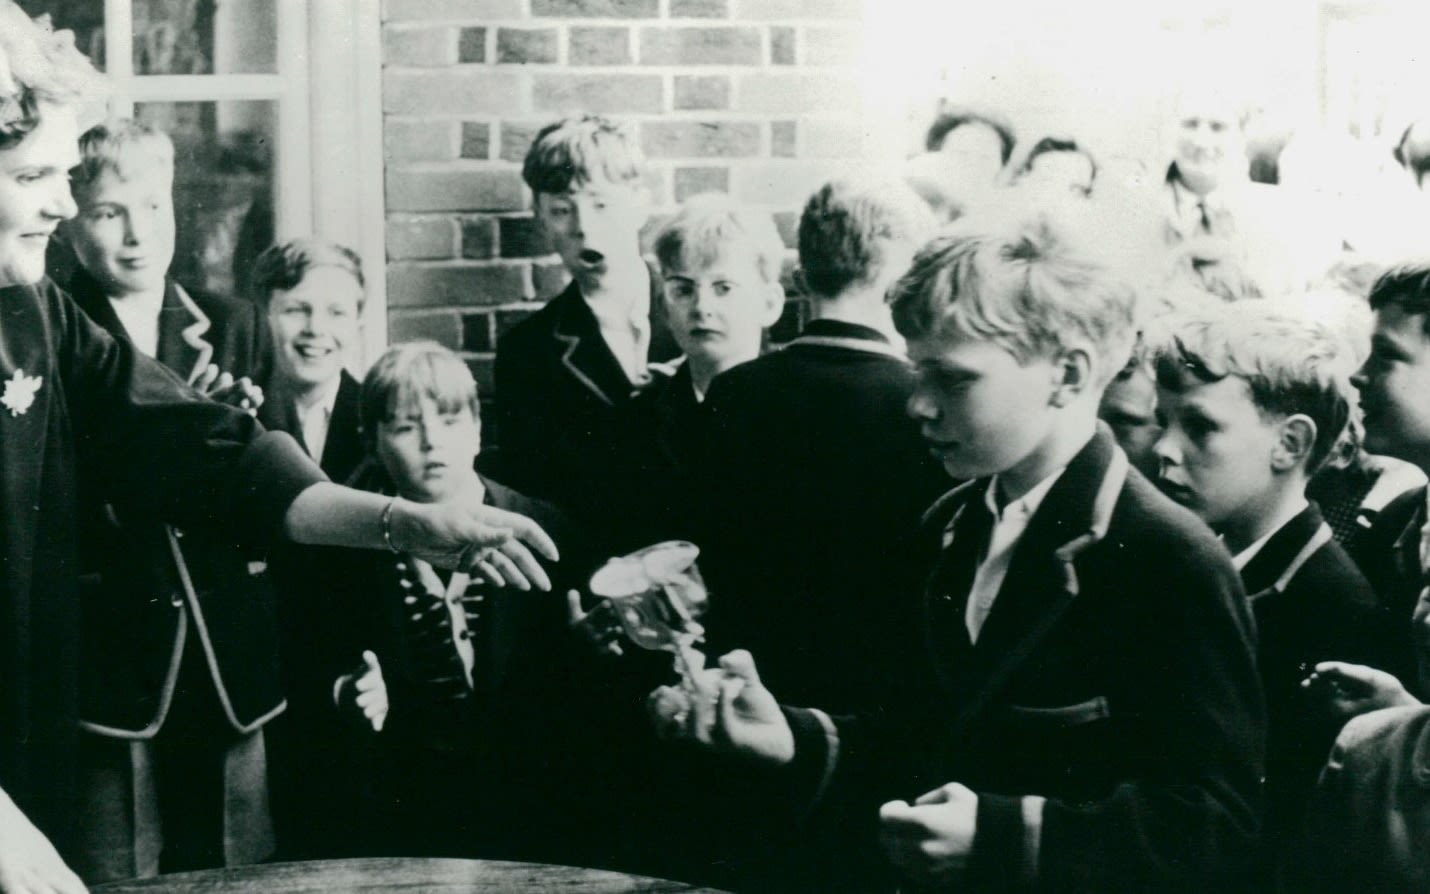 A black and white photo of a young Richard Branson in a group at school being handed a trophy